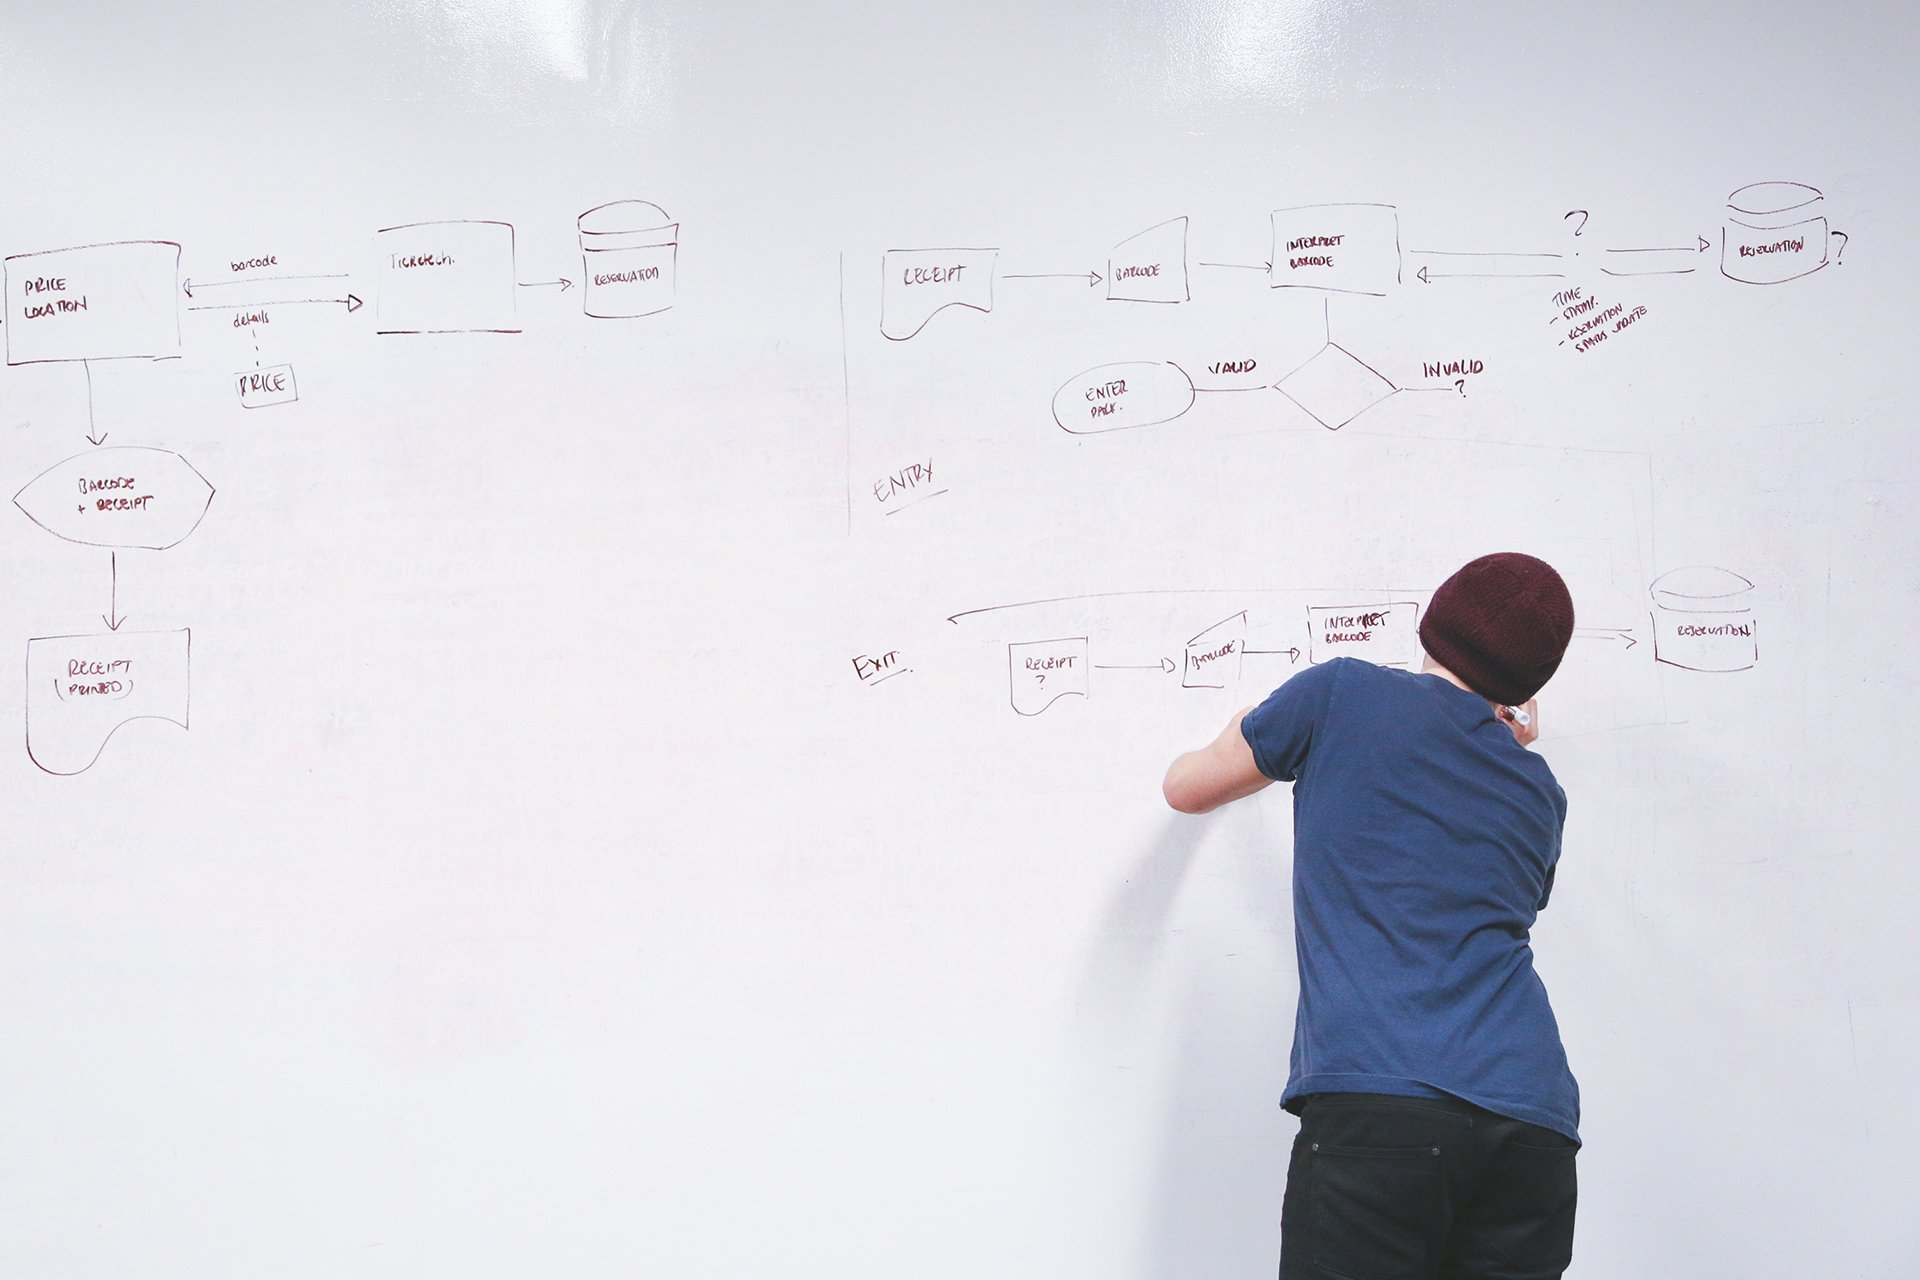 social media planning on a whiteboard